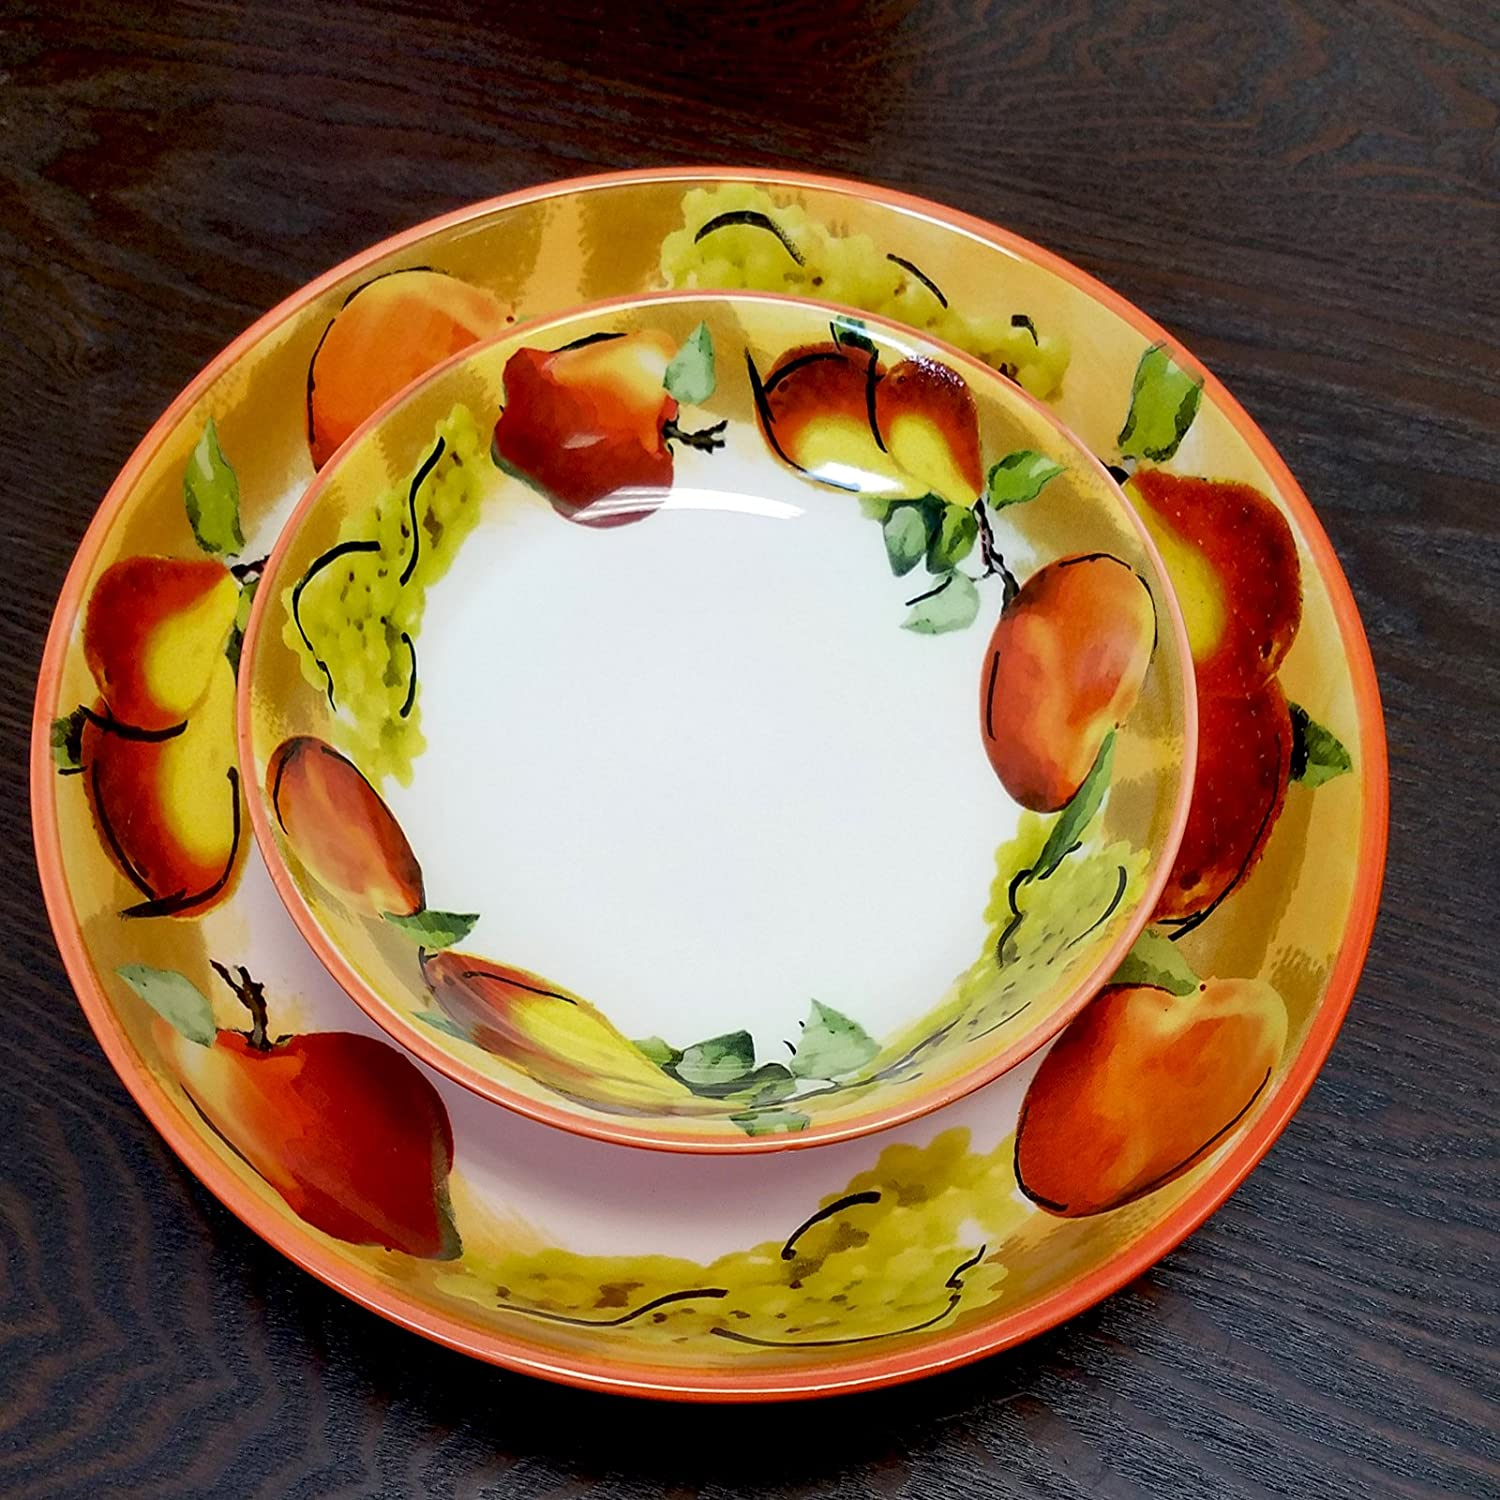 White Elama 930103088M Fruitful Bounty 5 Piece Pasta Serving Bowl Set